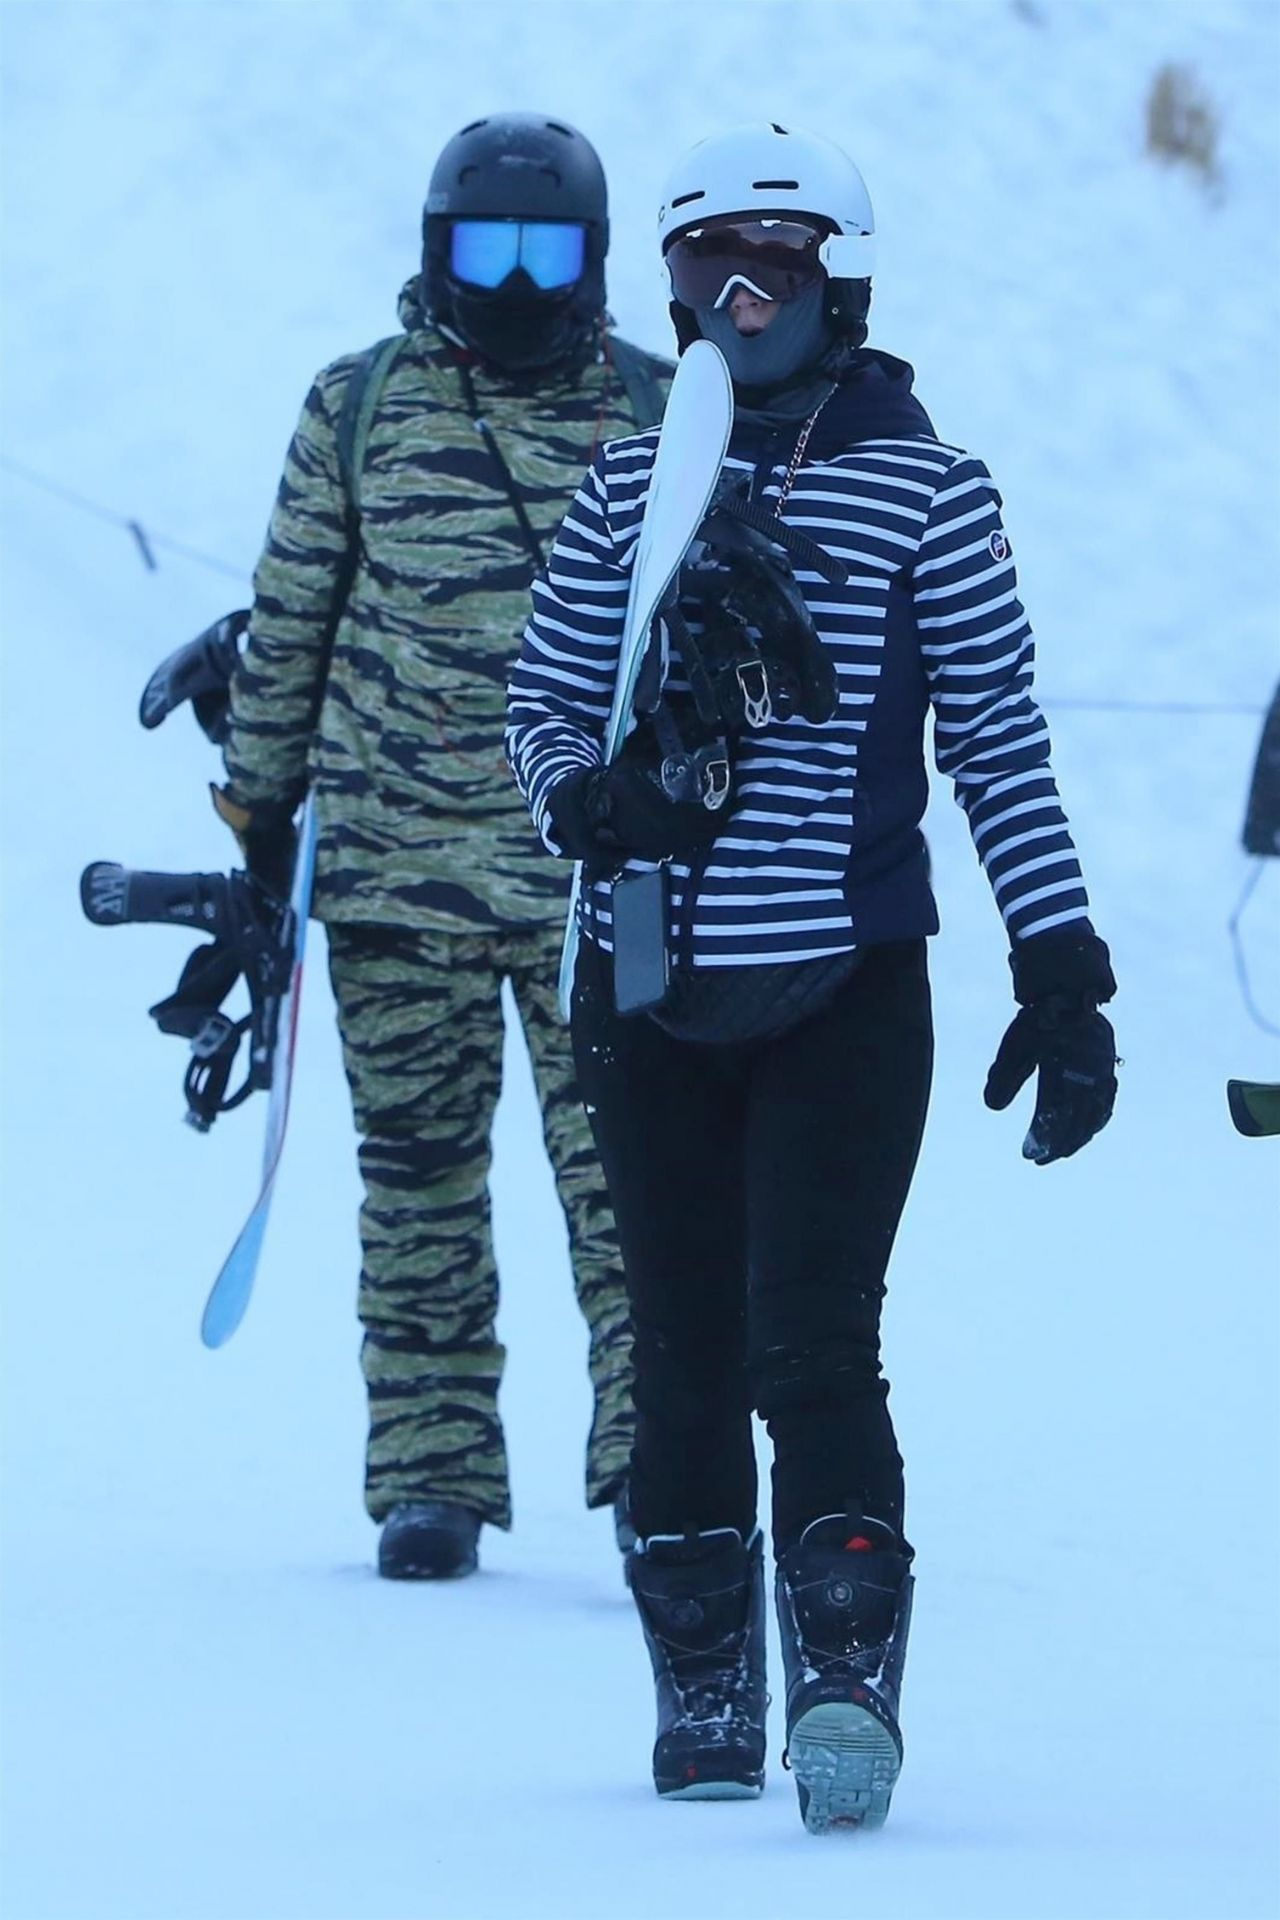 Katy Perry And Orlando Bloom Snowboarding In Aspen 0102